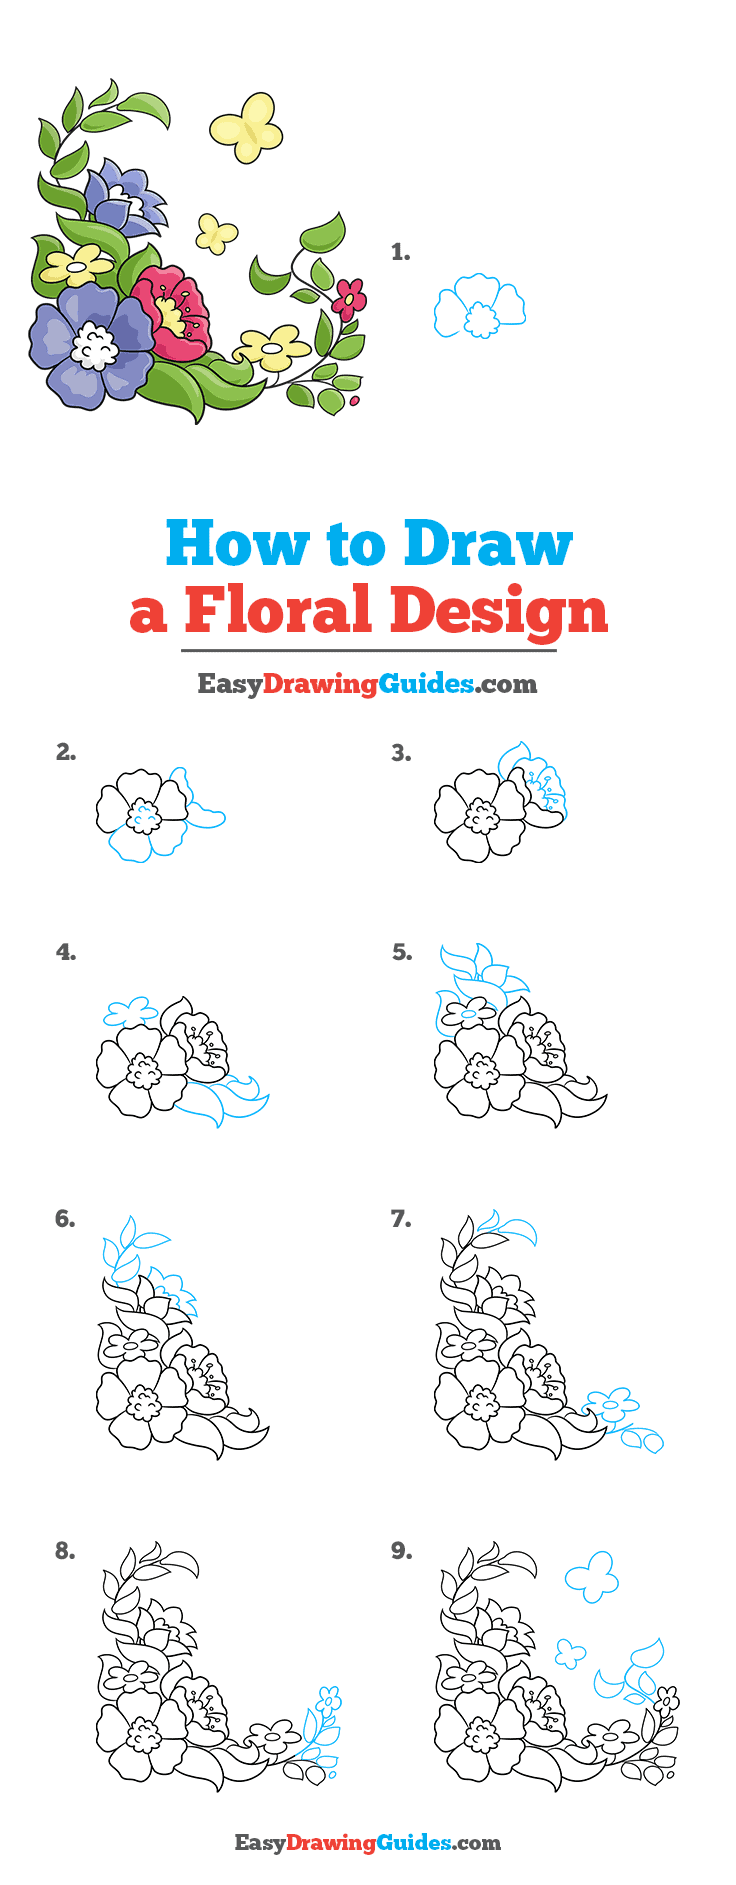 How to Draw a Floral Design Step by Step Tutorial Image